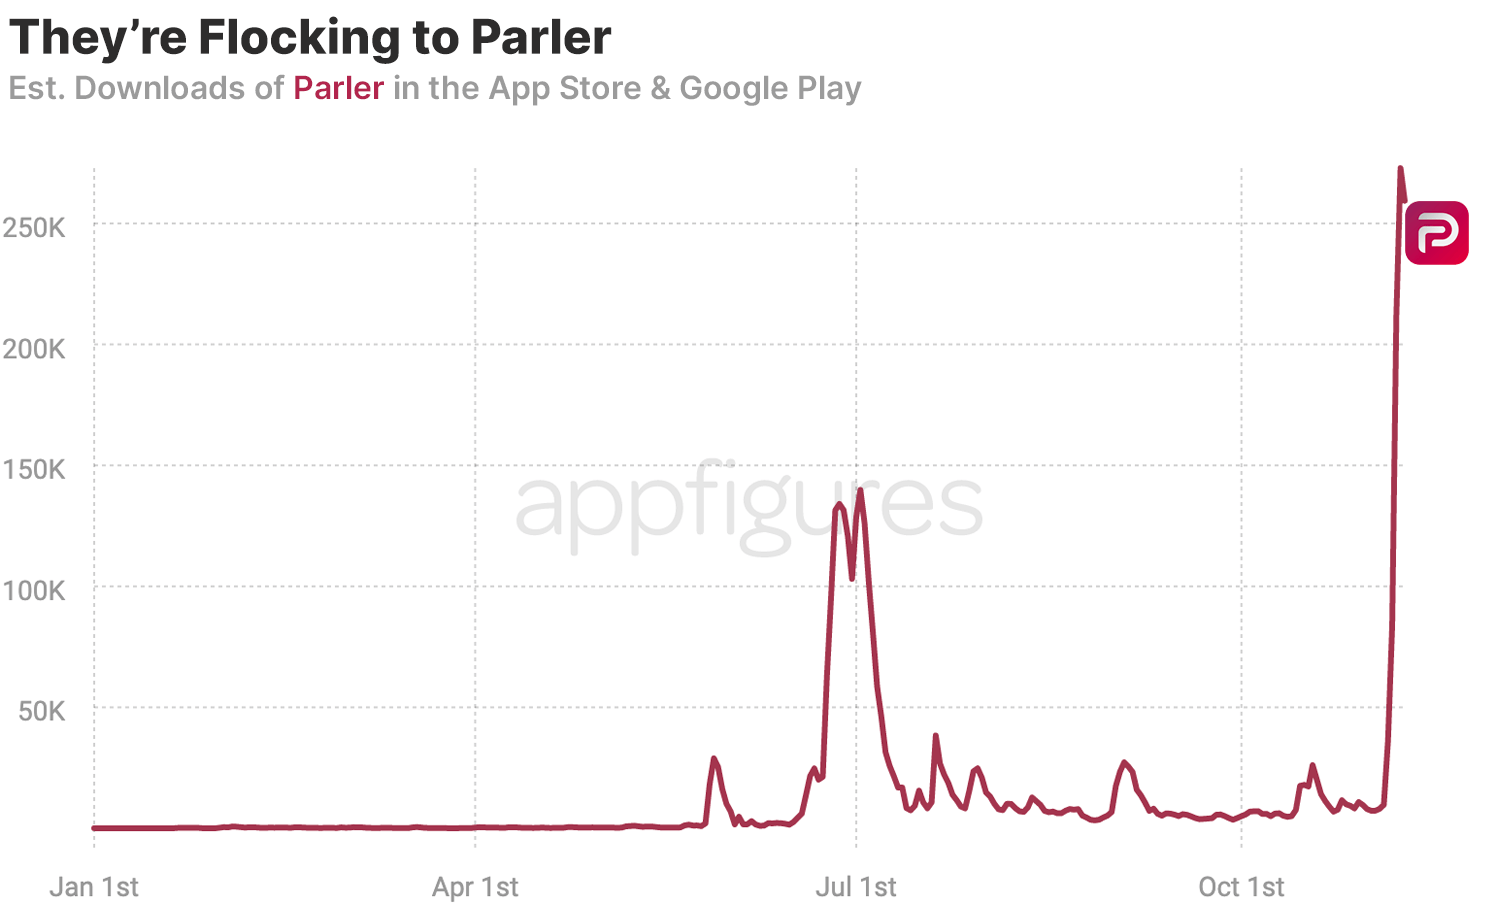 Parler downloads are about to hit 4,000,000